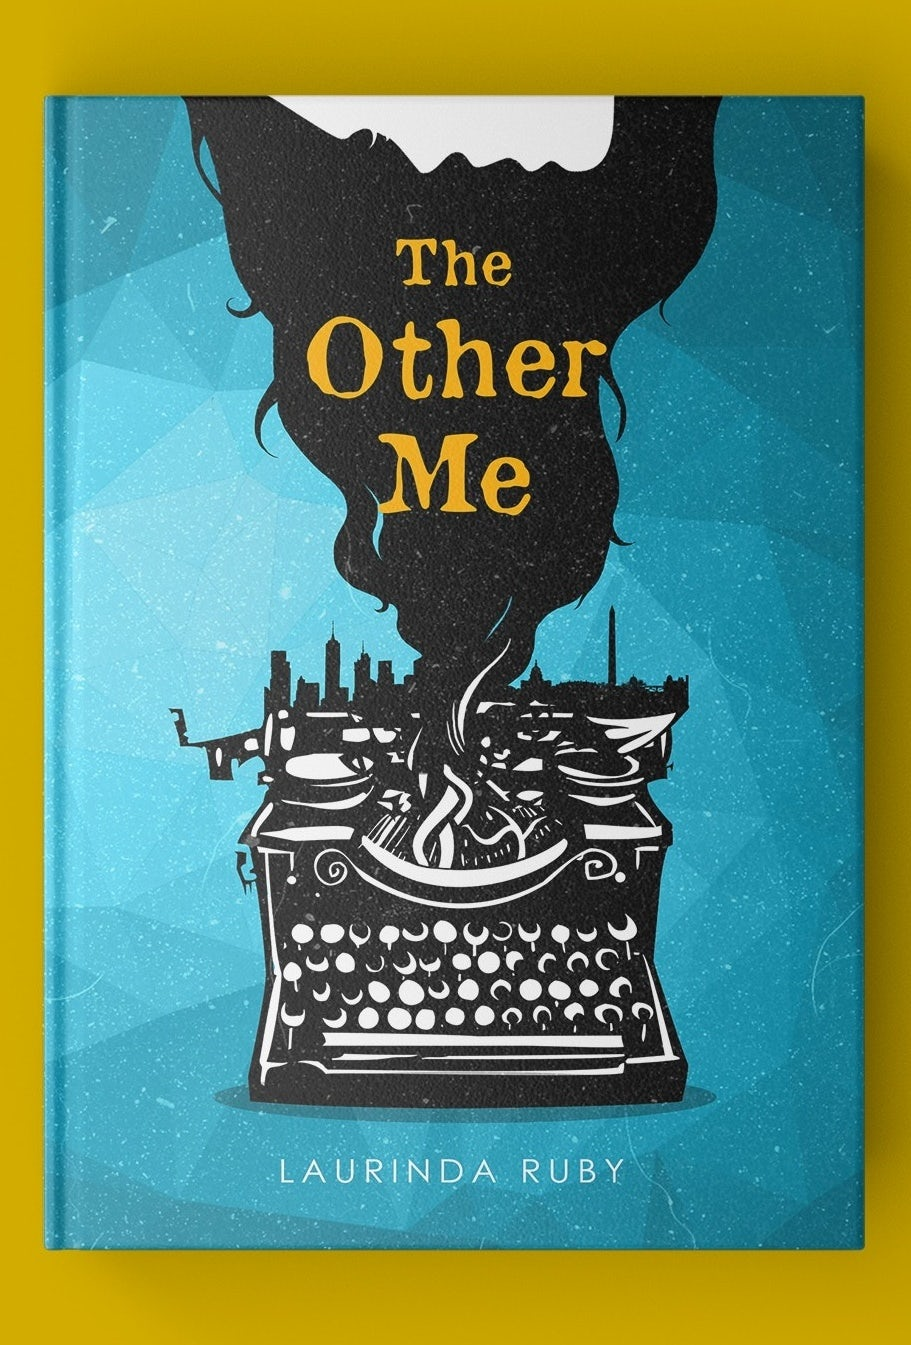 Surreal illustrated book cover design